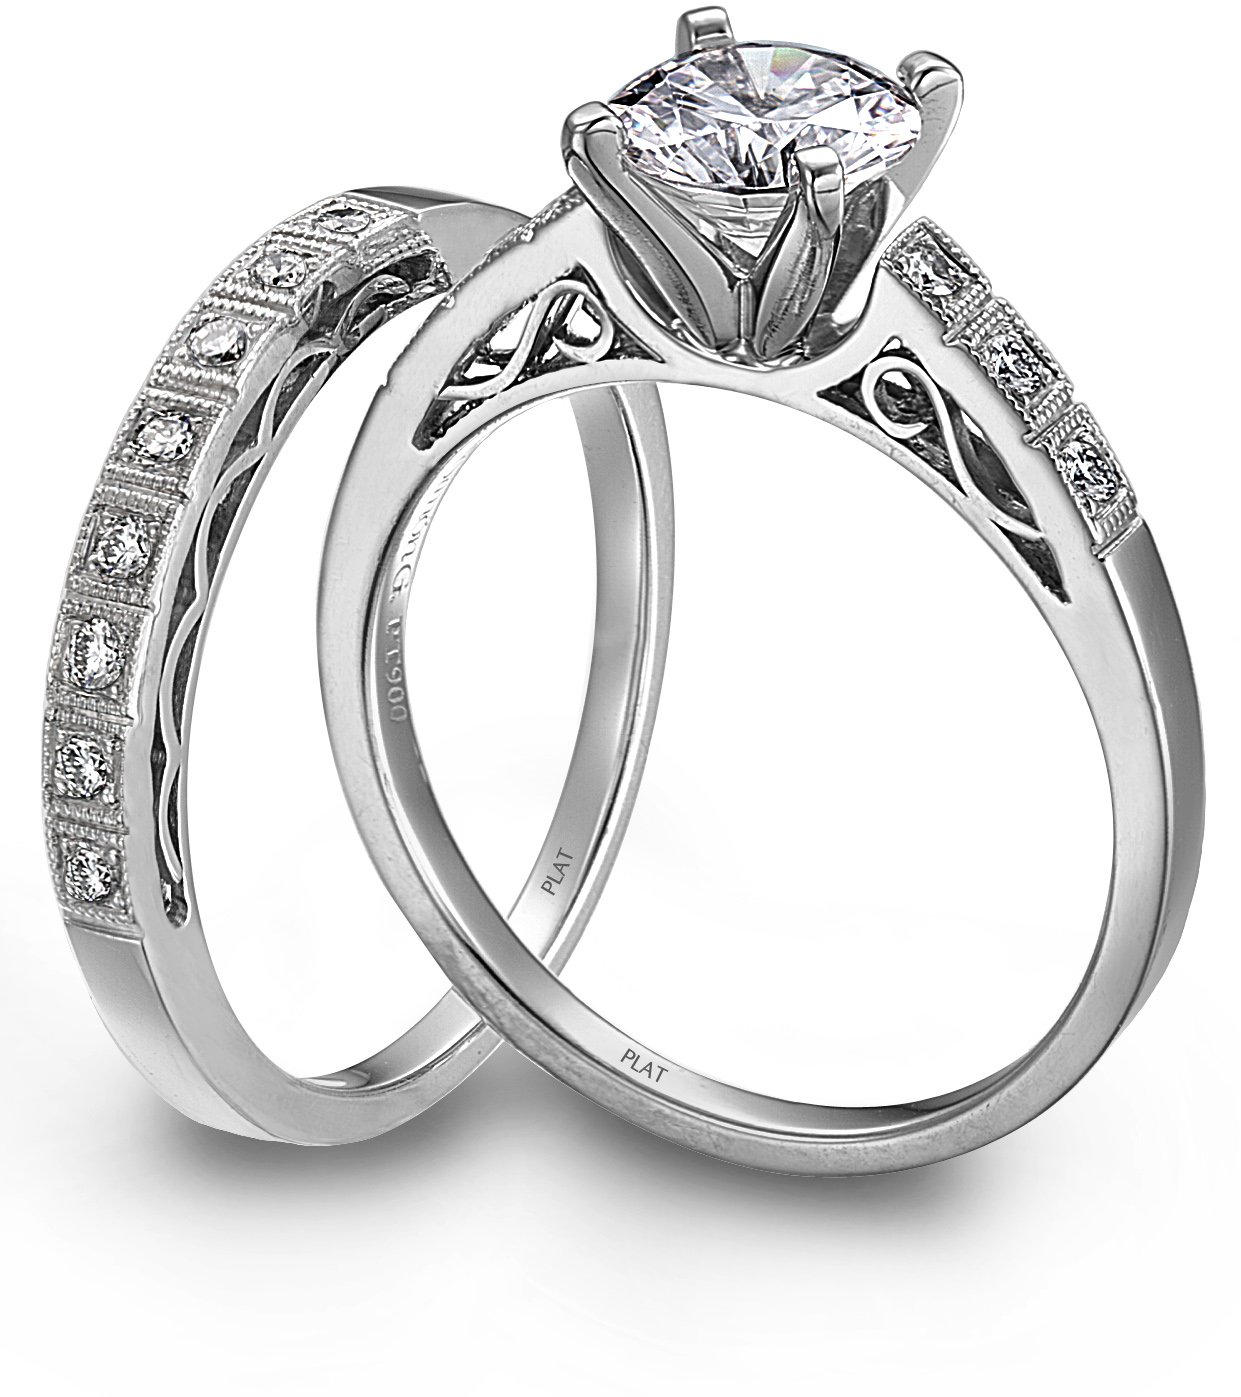 womans wedding ring - Pictures Of Wedding Rings